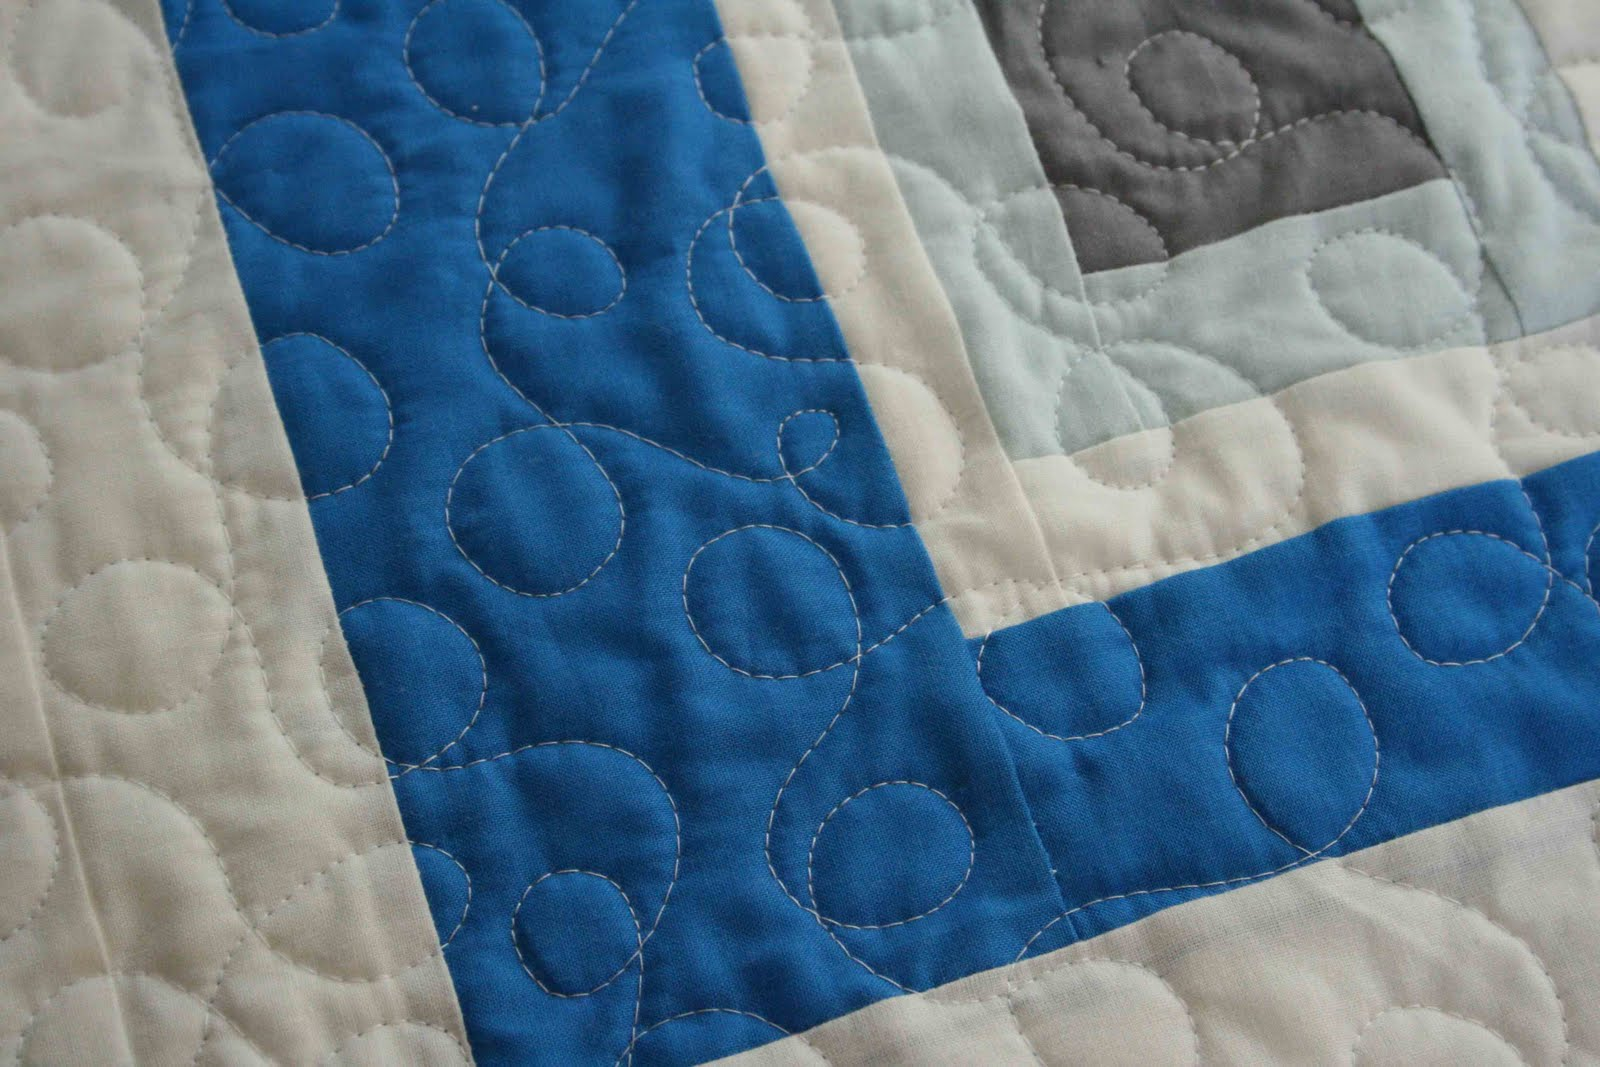 crazy mom quilts: sue likes blue